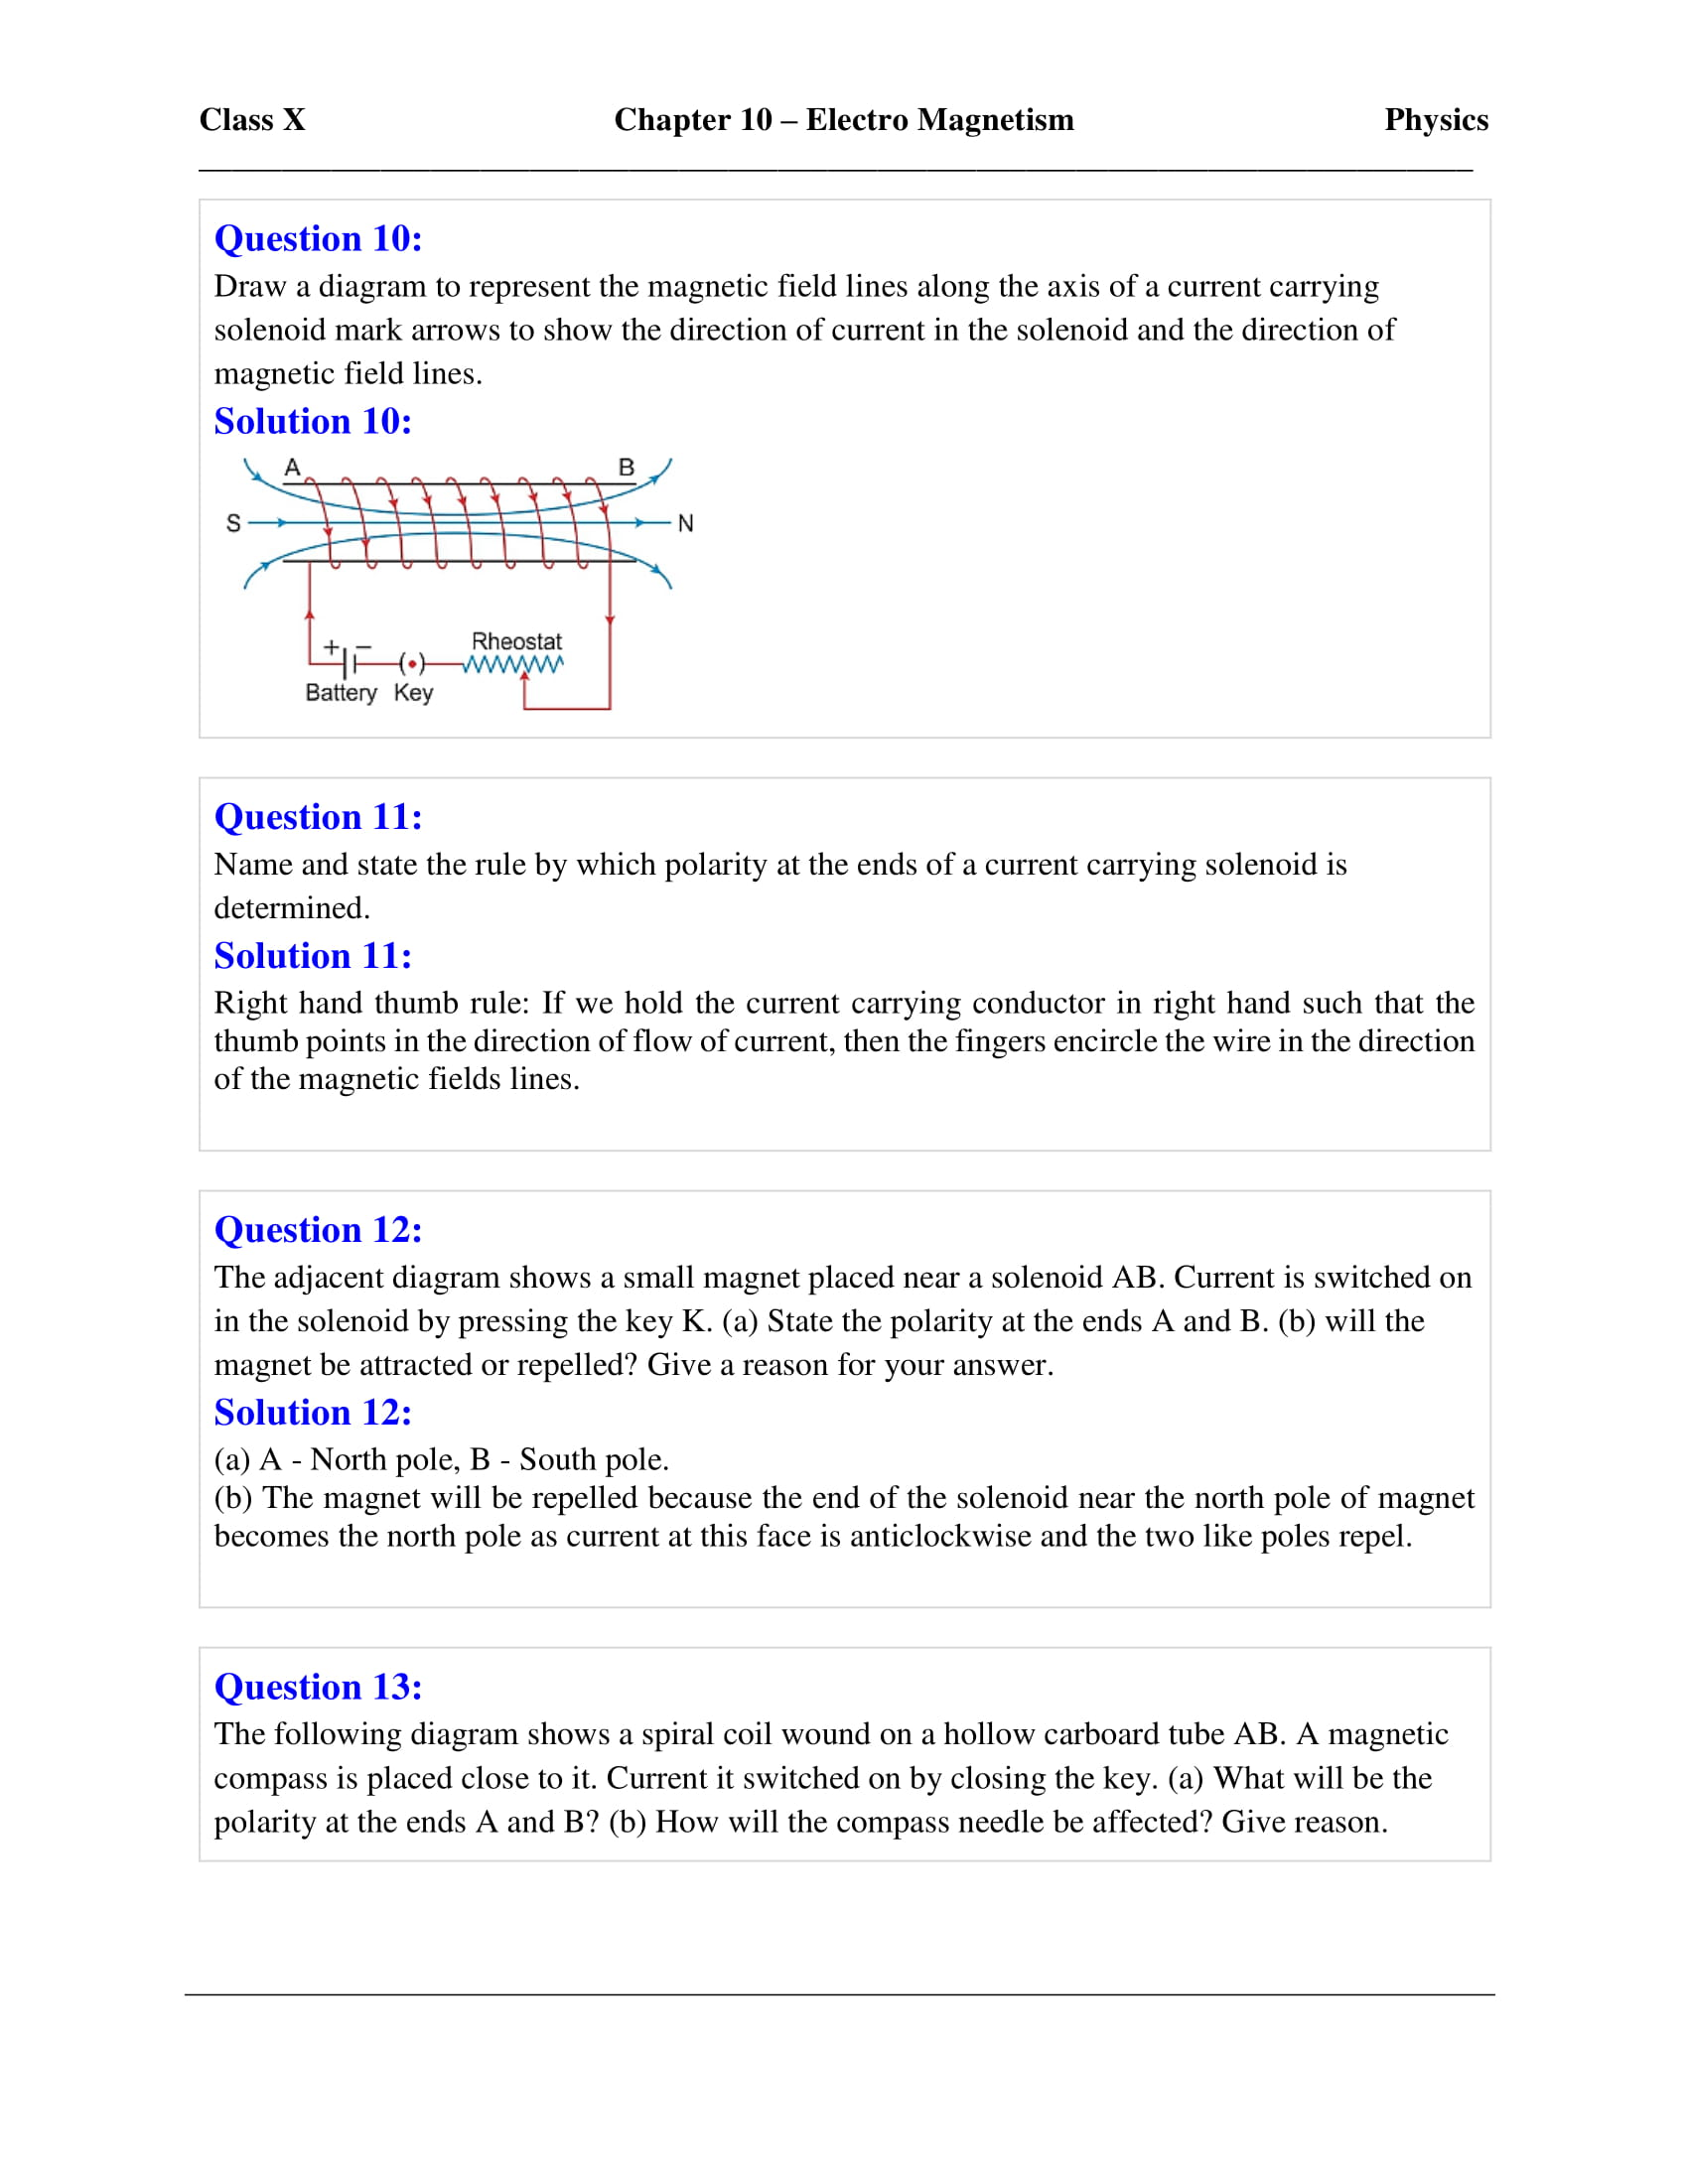 icse-selina-physics-solutions-class-10-chapter-10-electro-magnetism-05